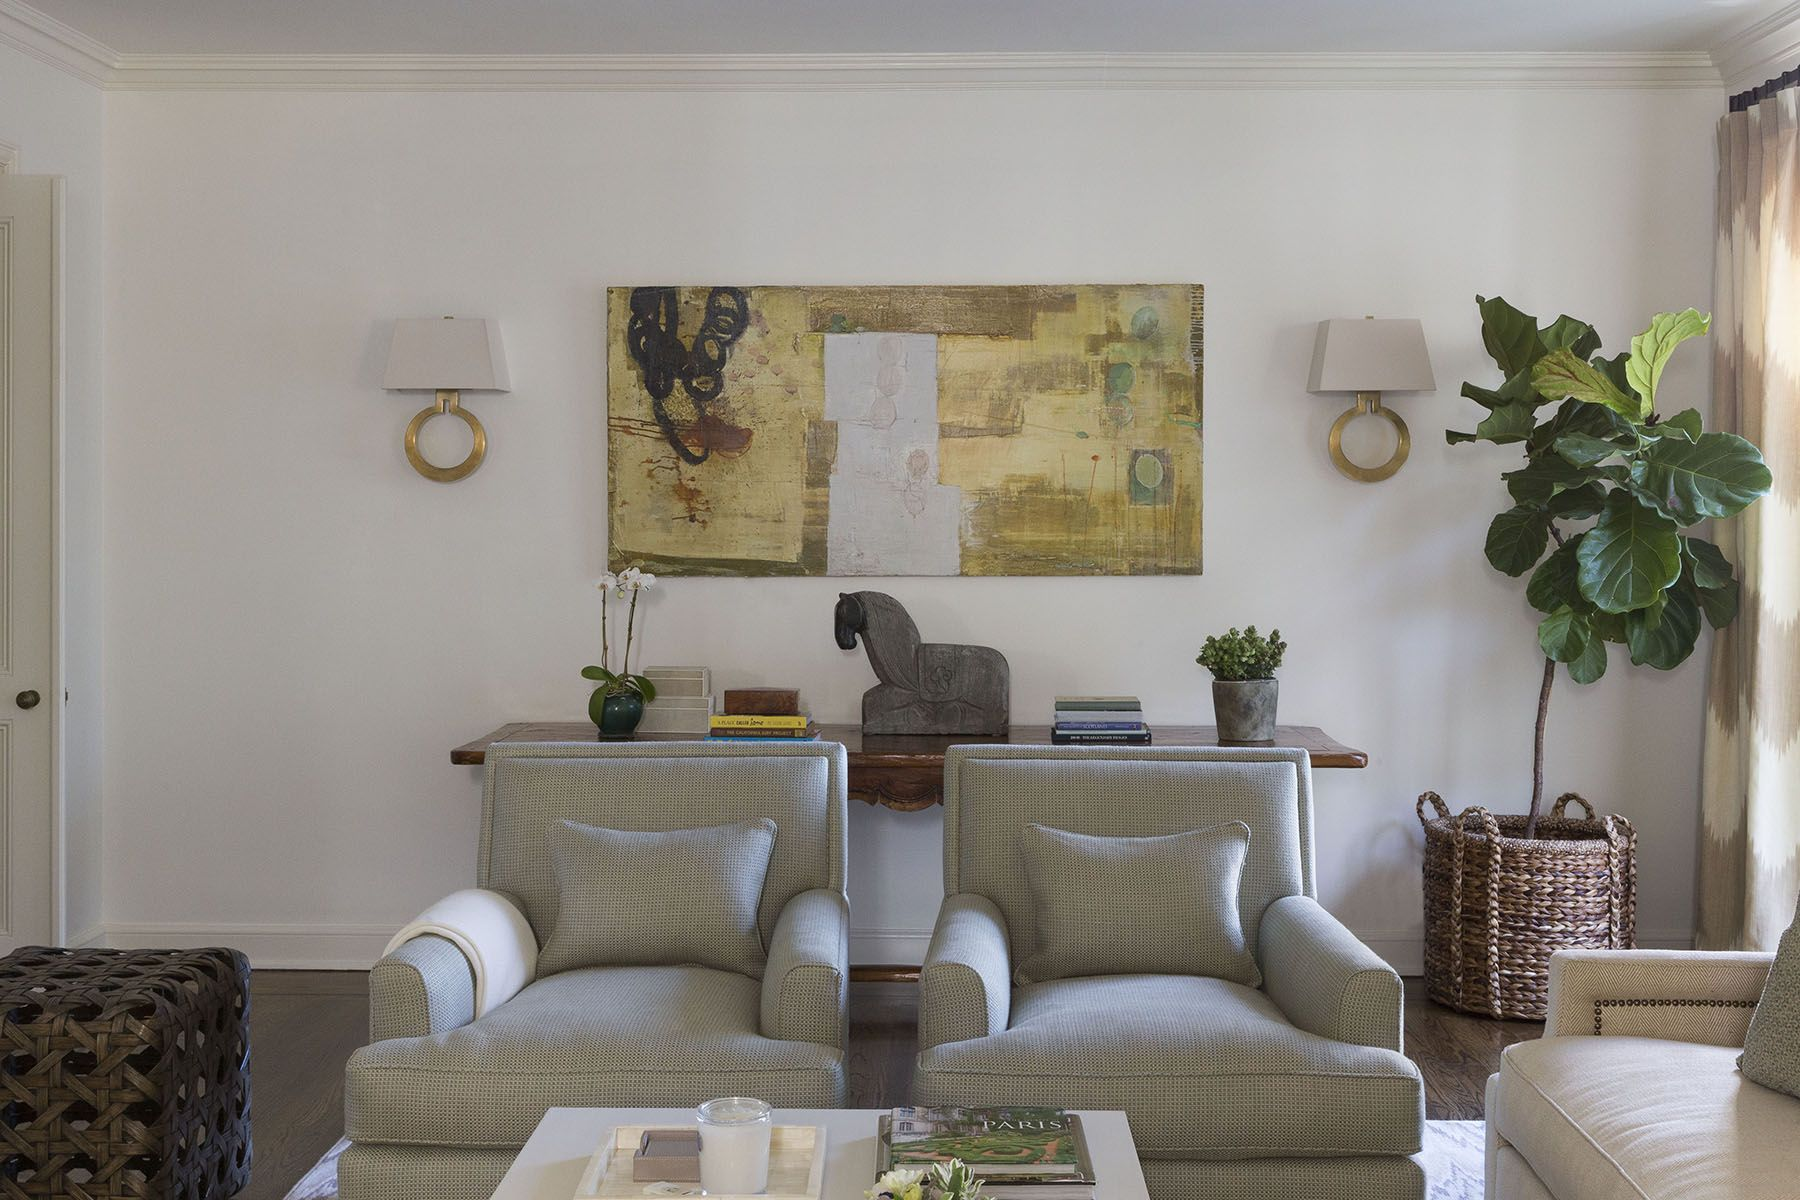 Pin by Betsy Frisch on Living Room | Pinterest | San francisco bay ...